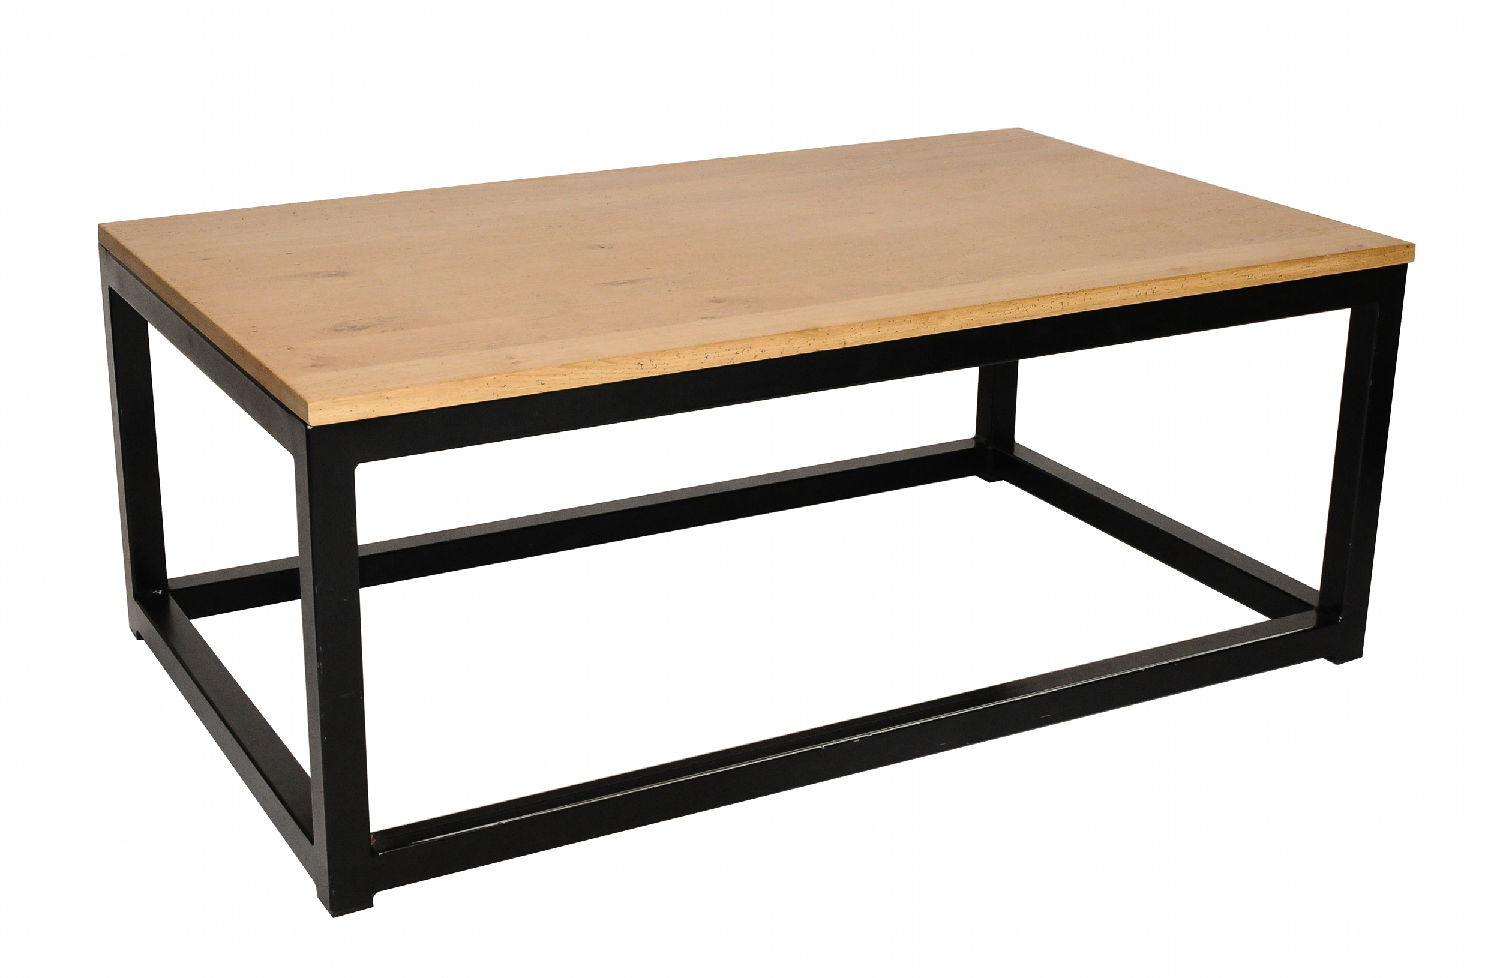 Table basse en fer et bois id es de d coration for Table basse fer et bois